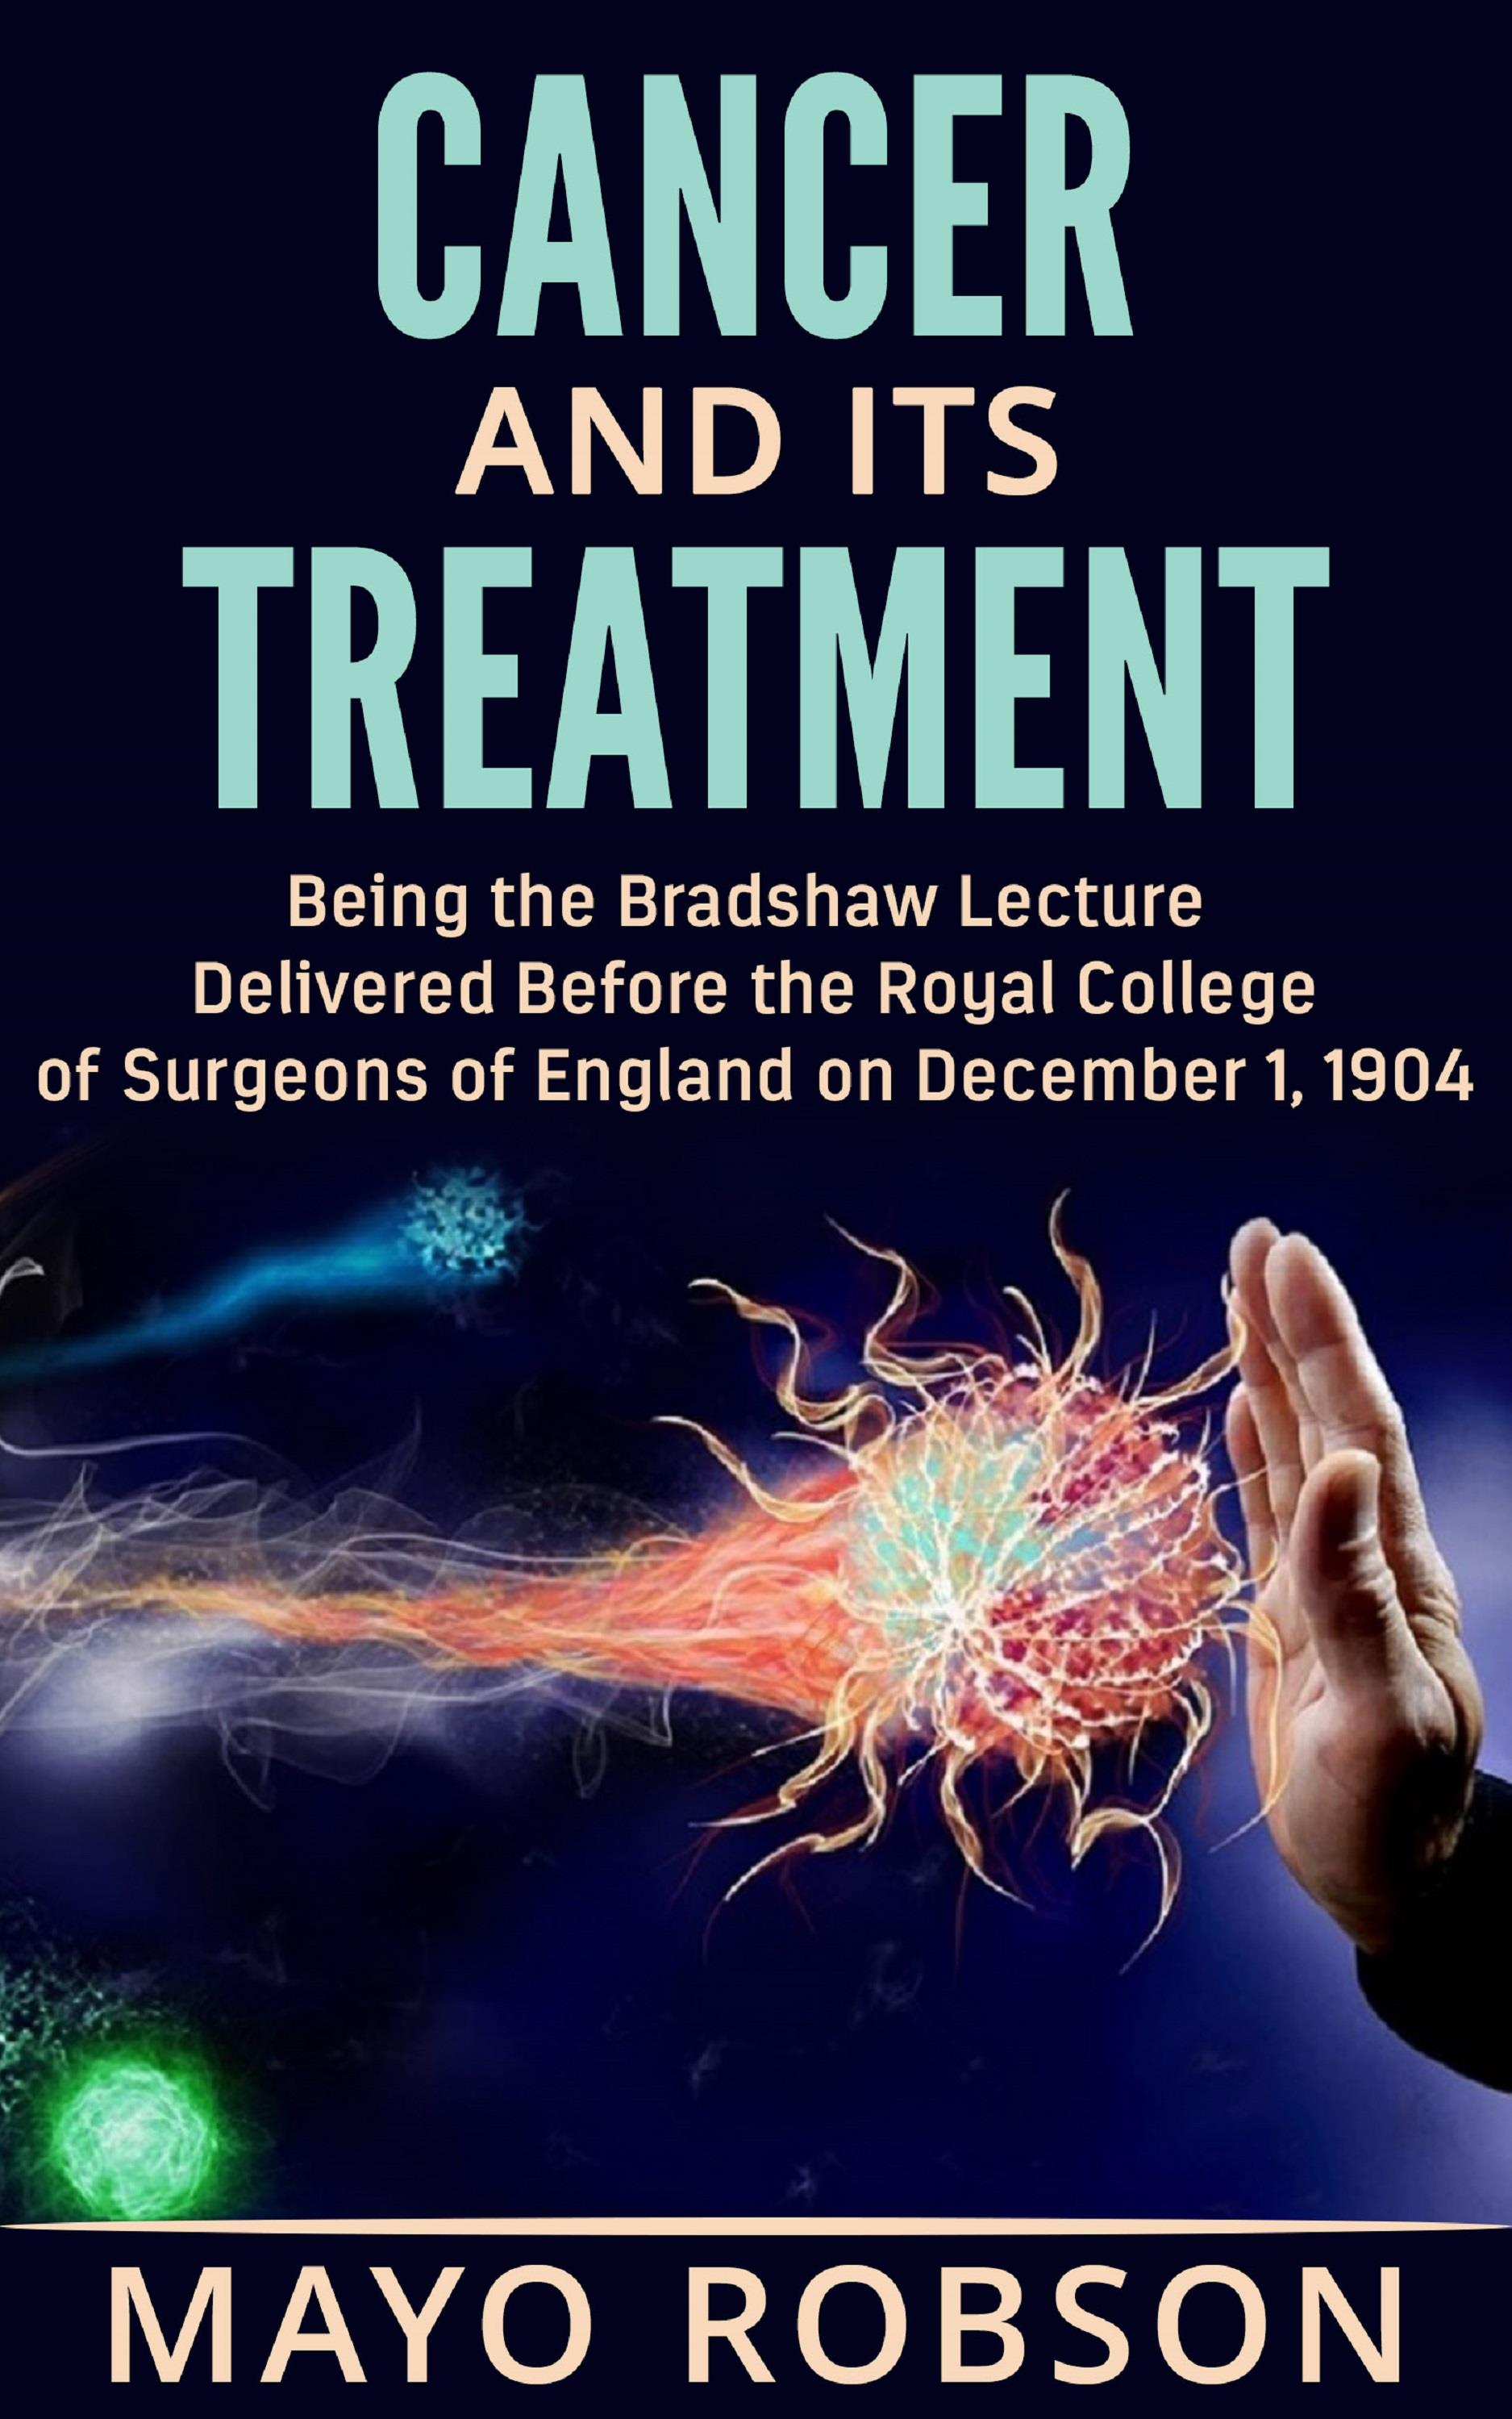 Cancer and its treatment: being the bradshaw lecture delivered before the Royal College of surgeons of England on december 1, 1904